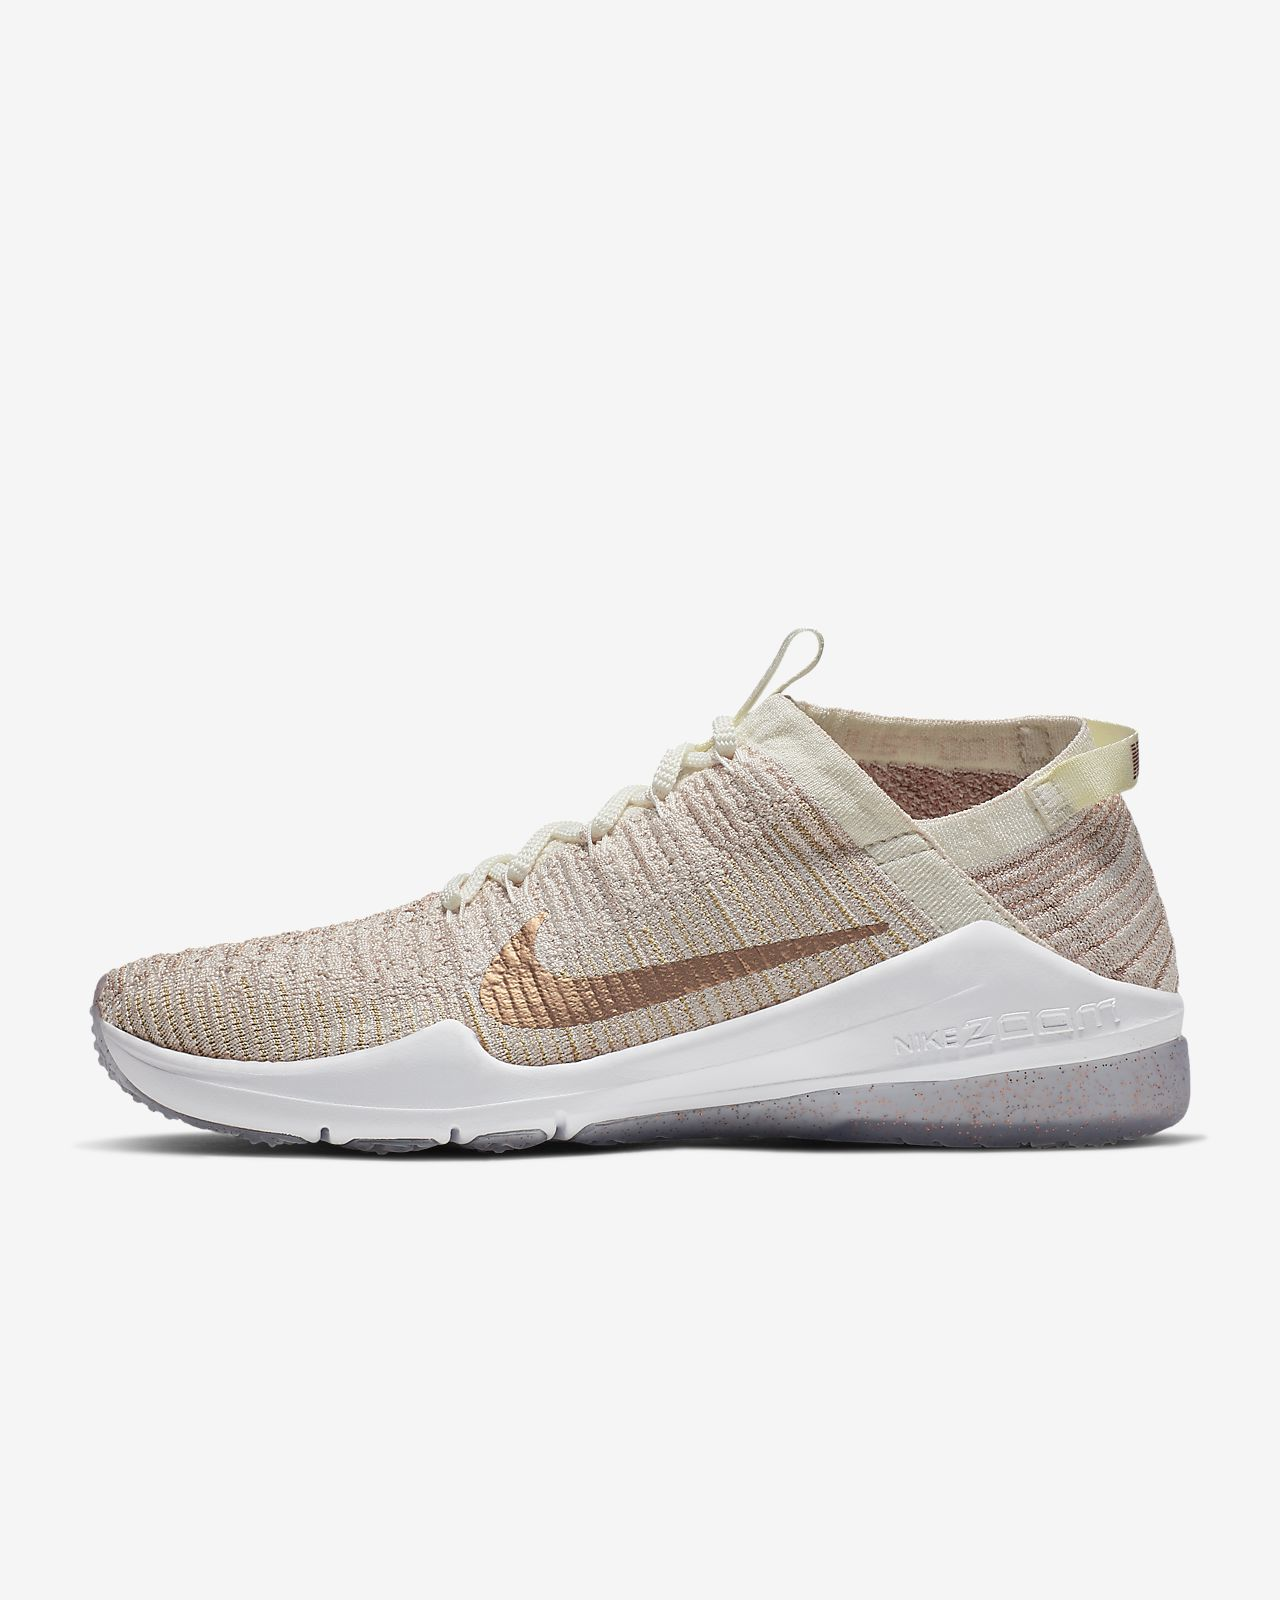 a7373379a54f Nike Air Zoom Fearless Flyknit 2 Metallic Women s Training Shoe ...